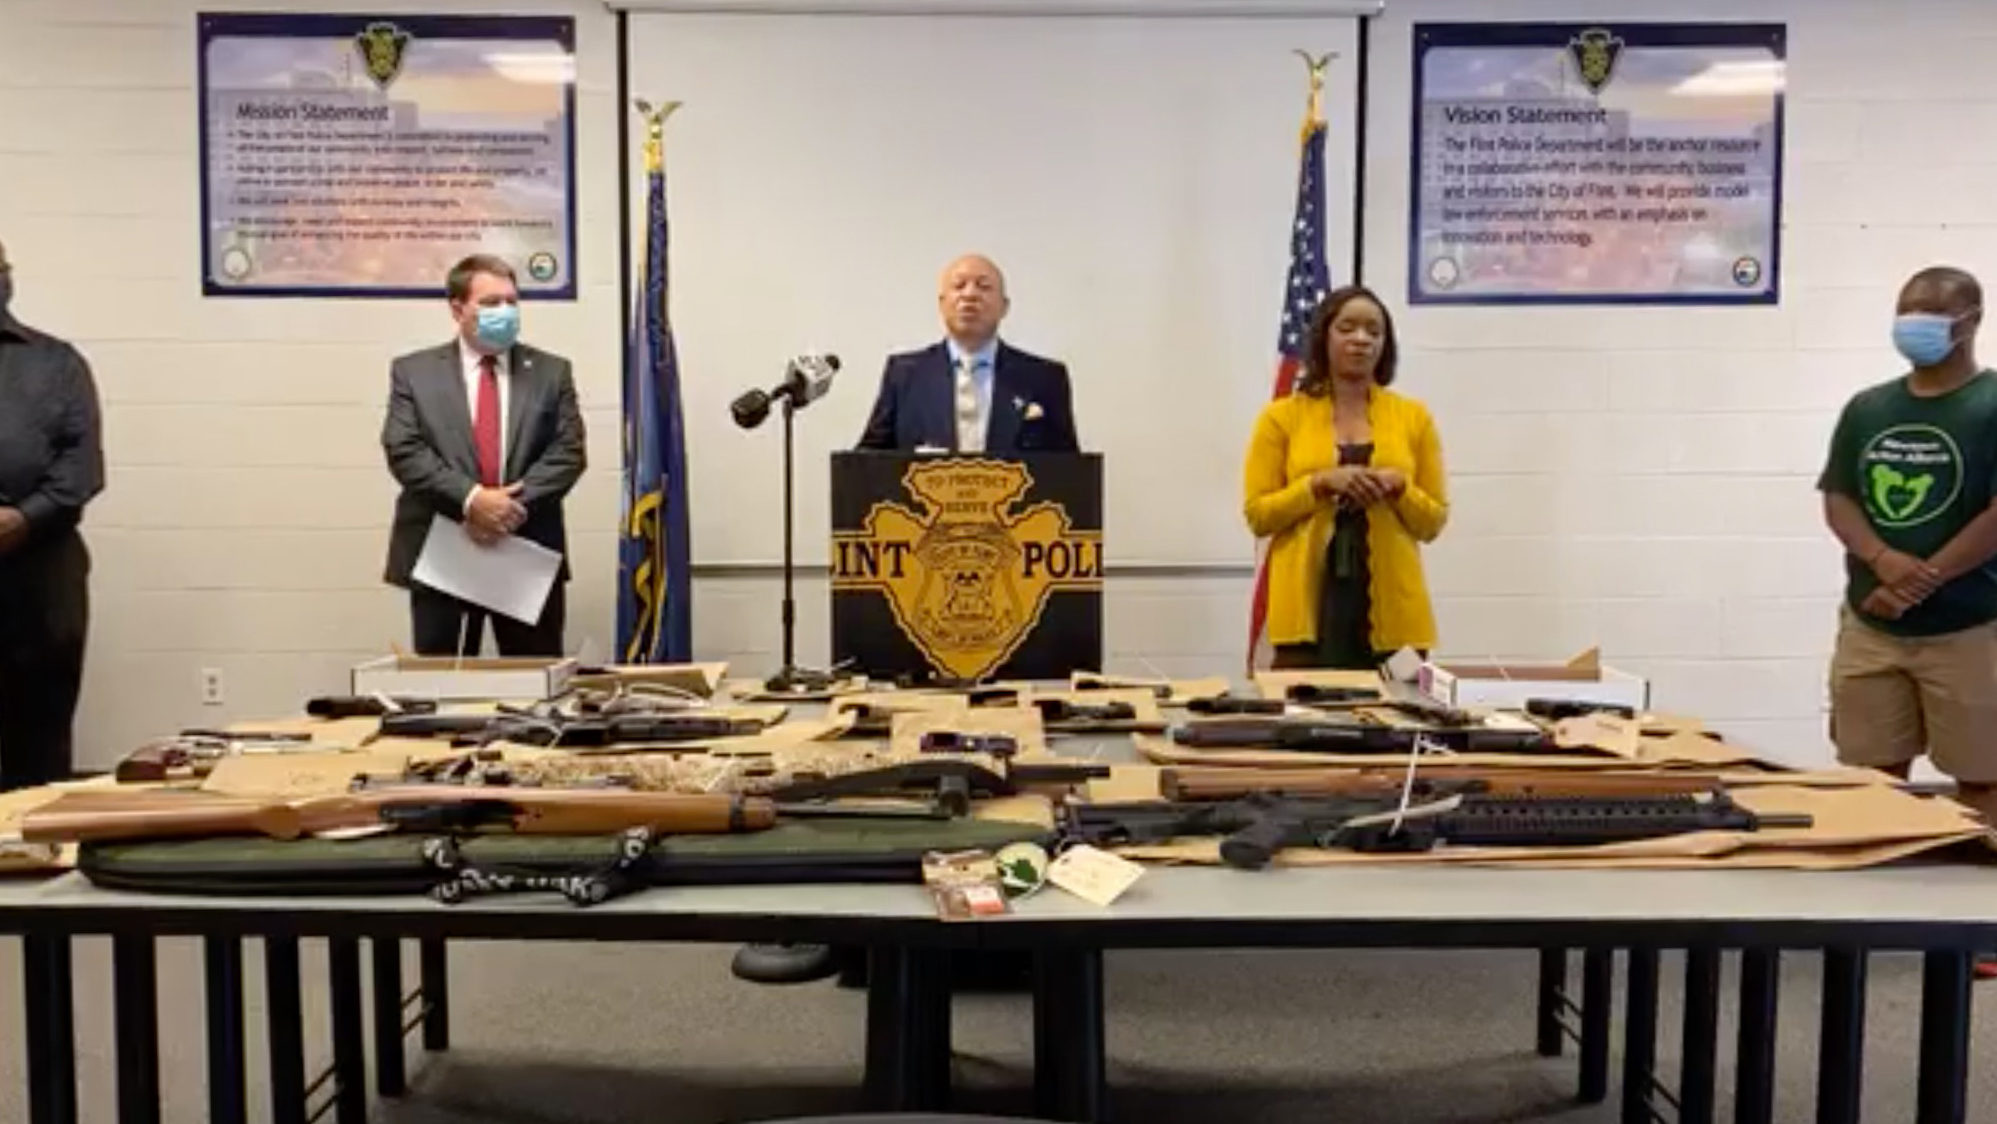 Flint, Michigan, will destroy guns seized by police rather than auctioning them